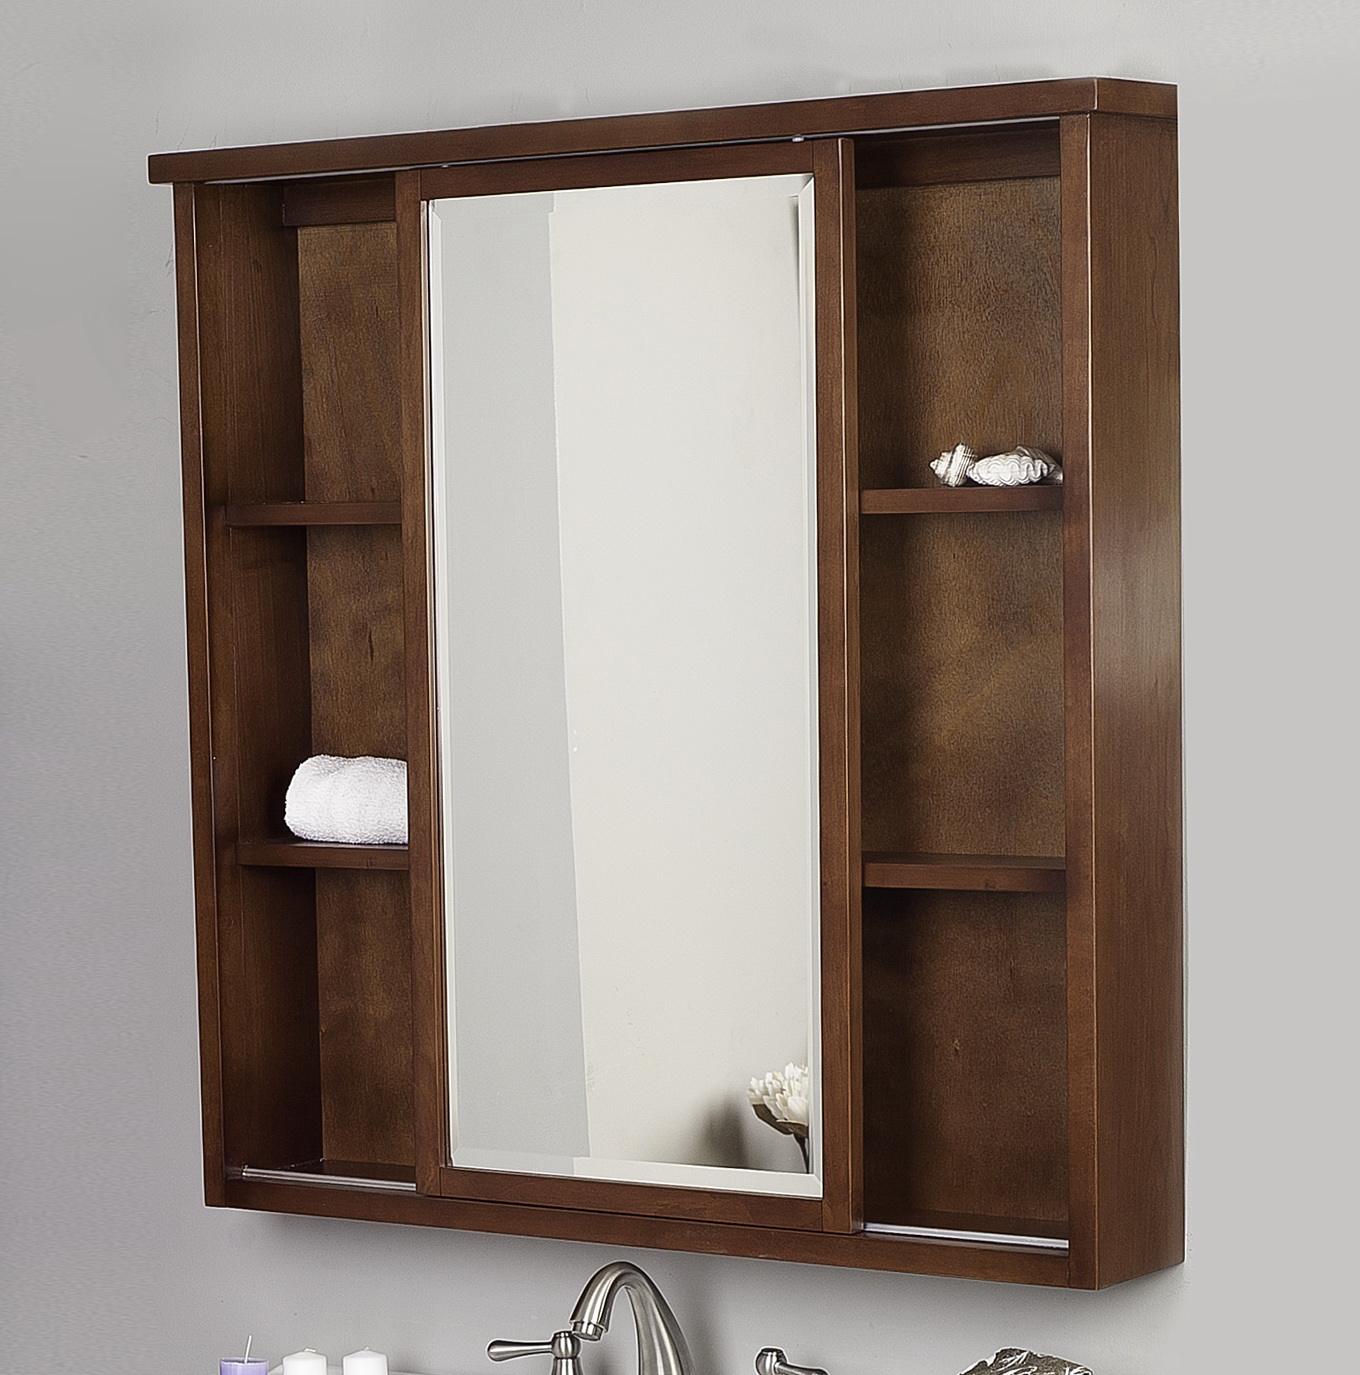 mirrored medicine cabinet lowes mirrored medicine cabinets lowes home design ideas 23411